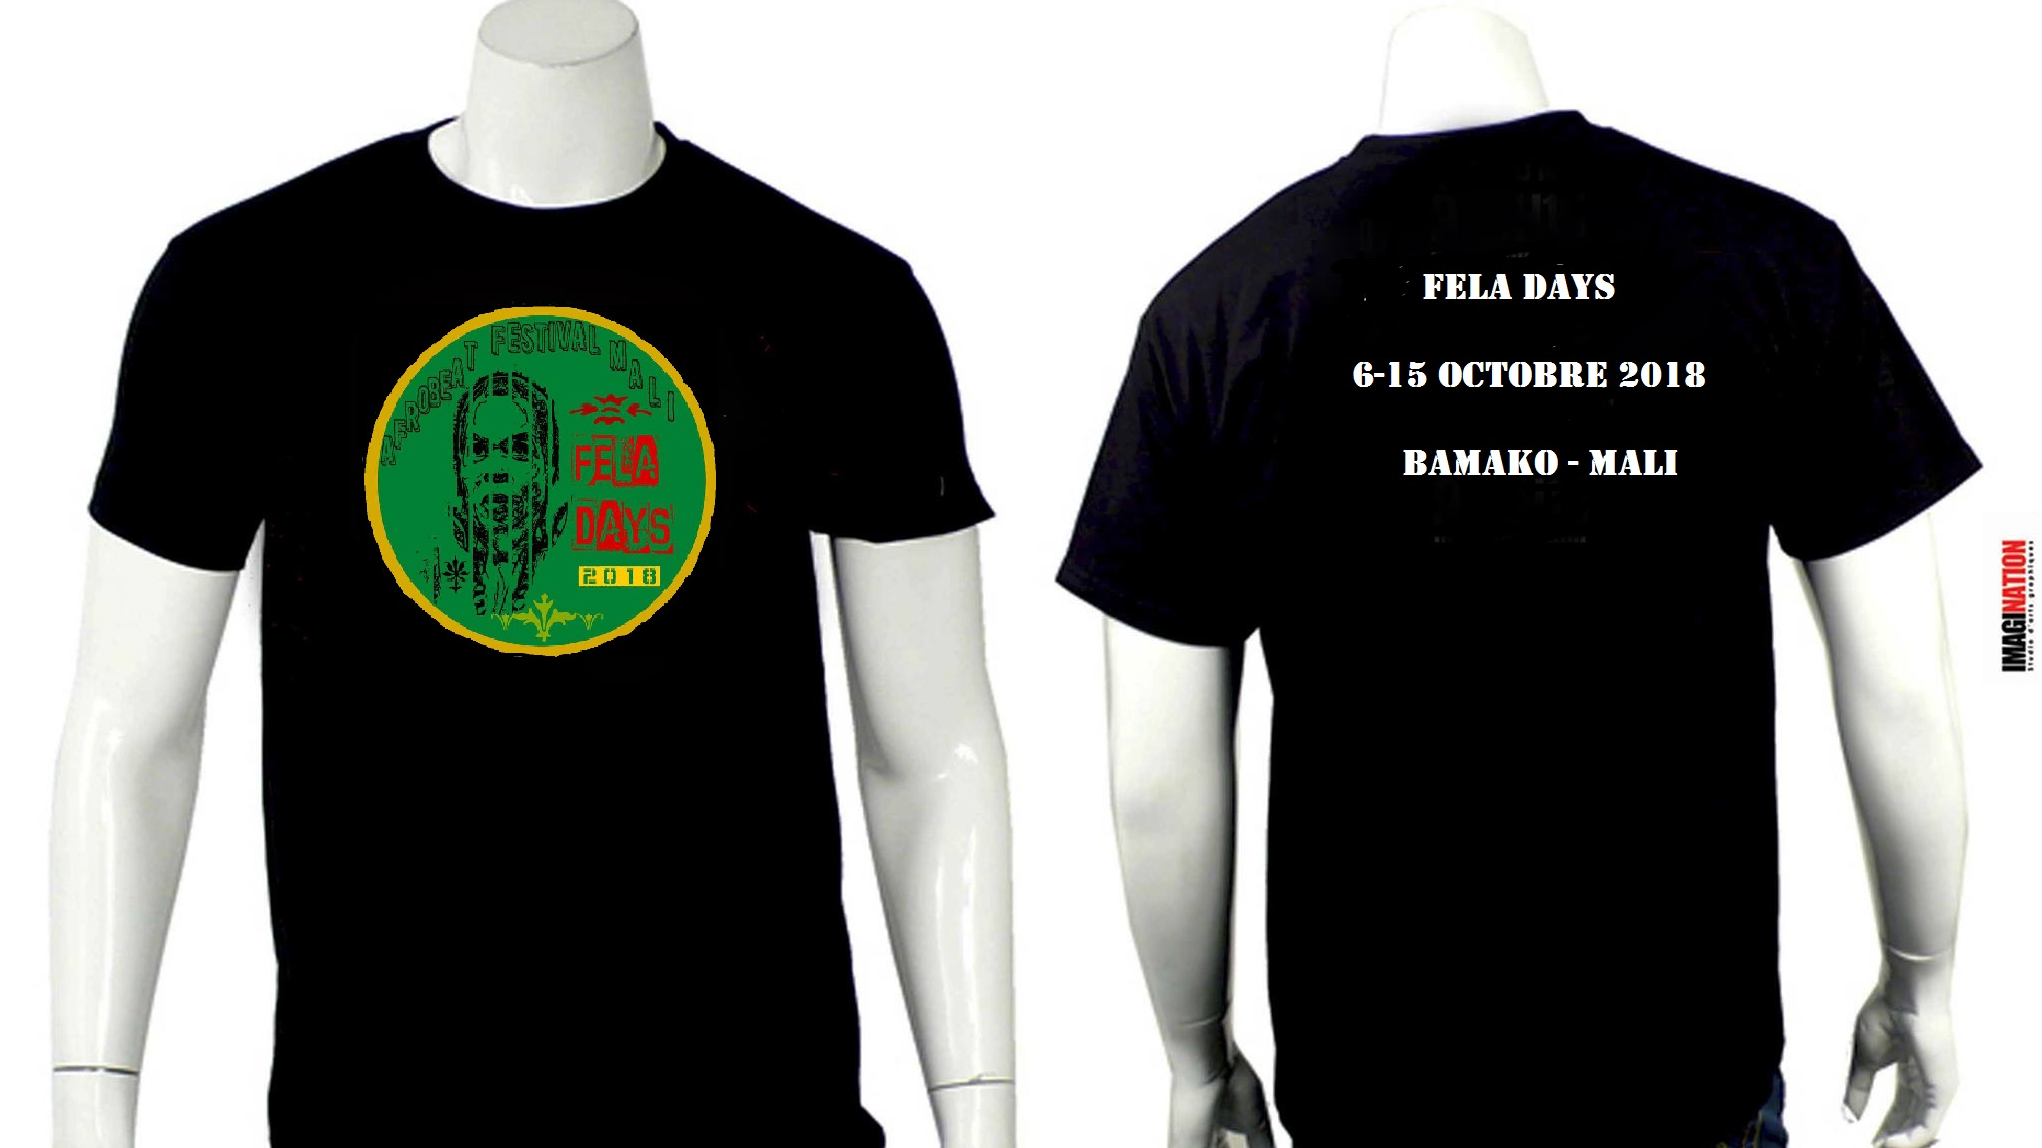 T_shirt_Fela_DAYS_Mali-1522238787.jpg